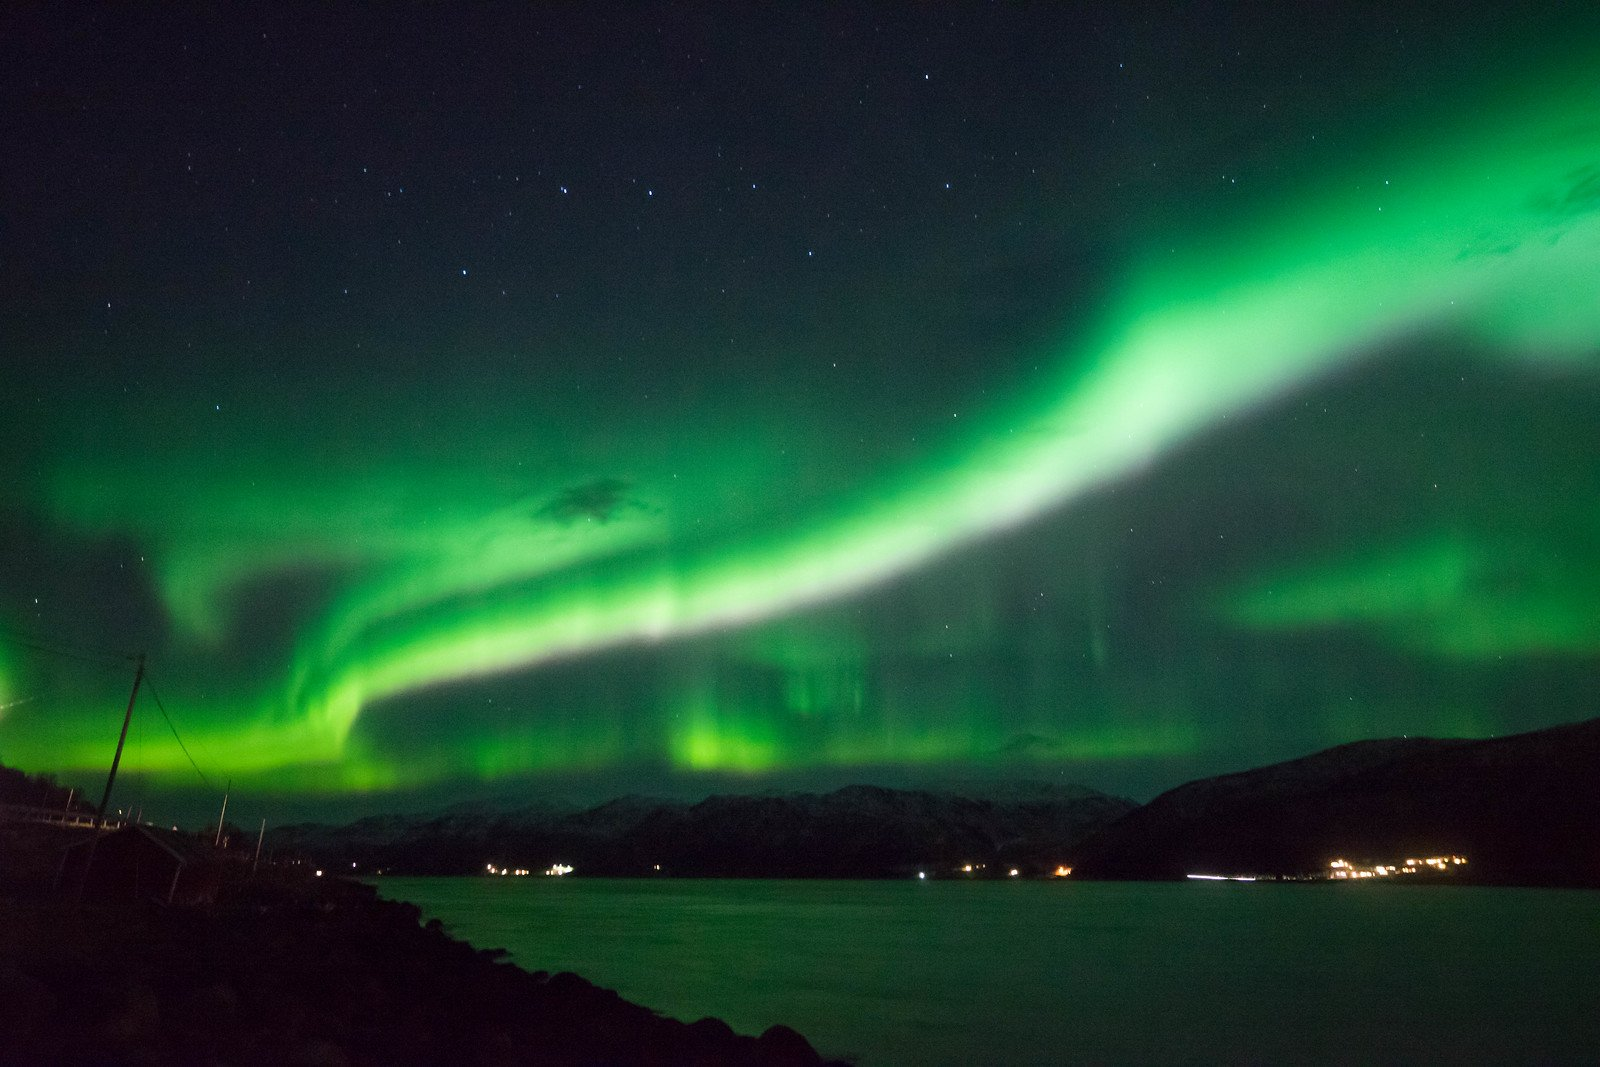 Seeing the Northern Lights for the First Time